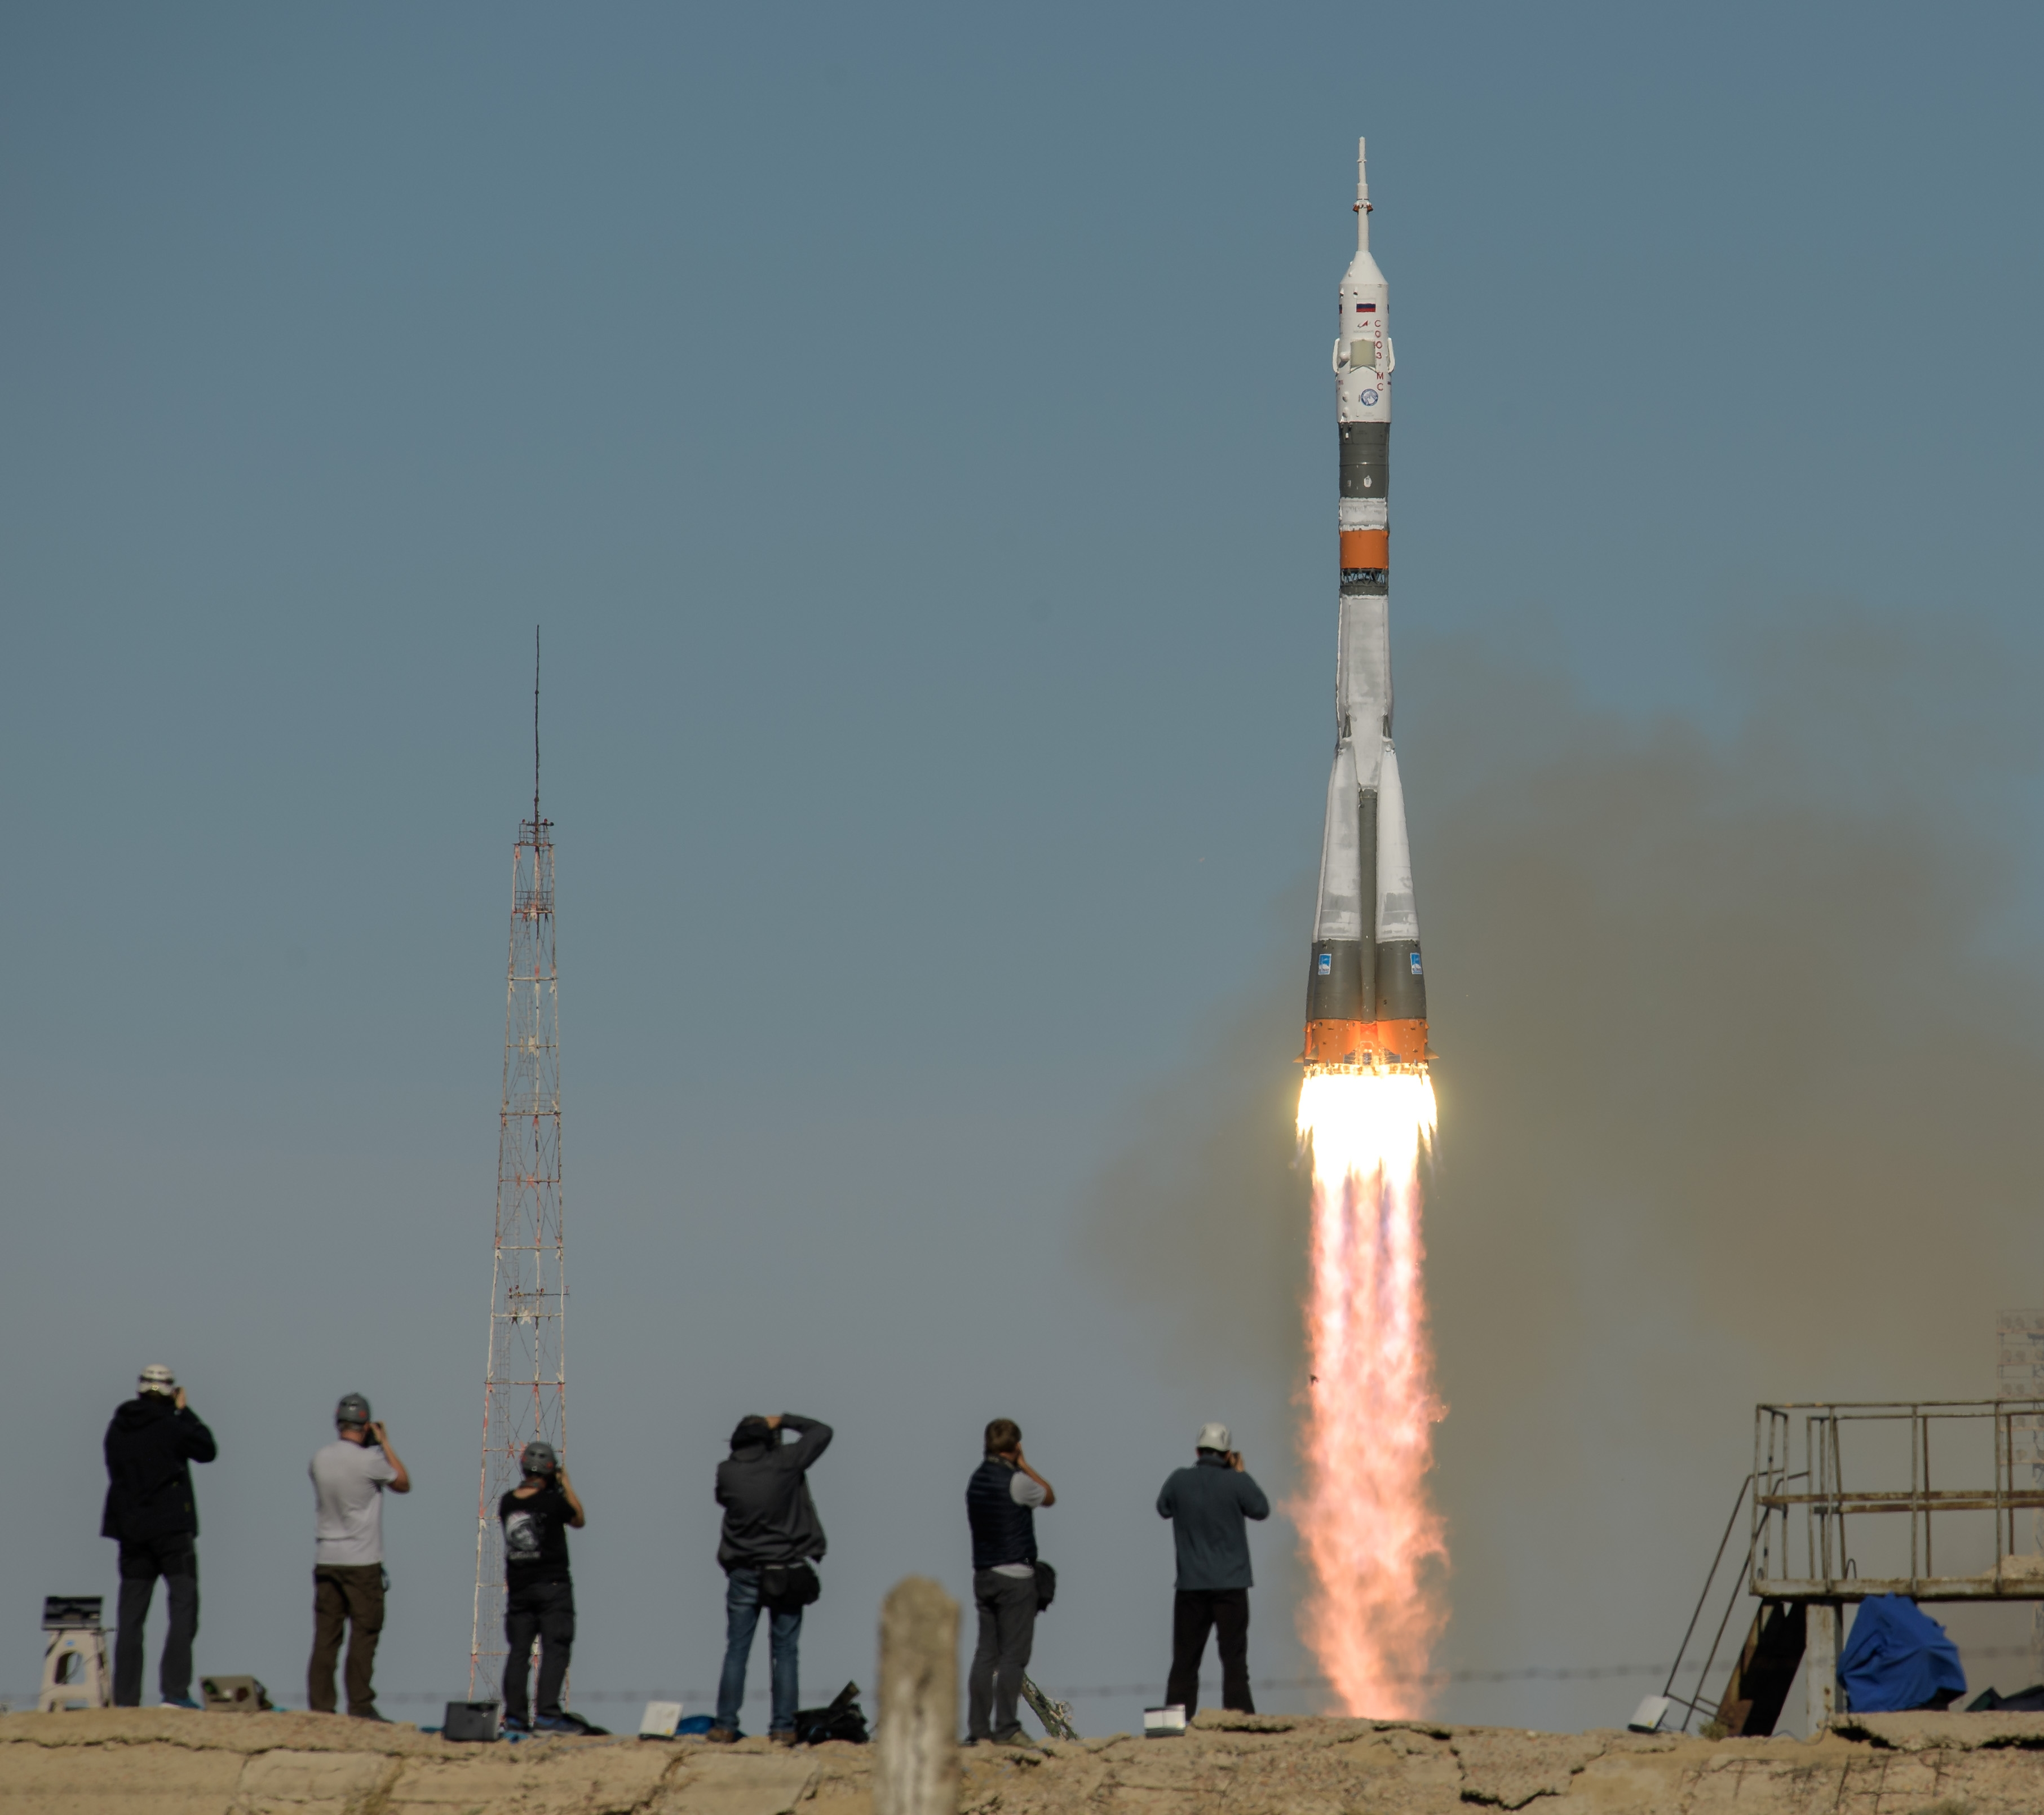 The Soyuz MS-10 spacecraft is launched with Expedition 57 Flight Engineer Nick Hague of NASA and Flight Engineer Alexey Ovchinin of Roscosmos, Thursday, Oct. 11, 2018 at the Baikonur Cosmodrome in Kazakhstan. (Photo: NASA/Bill Ingalls)